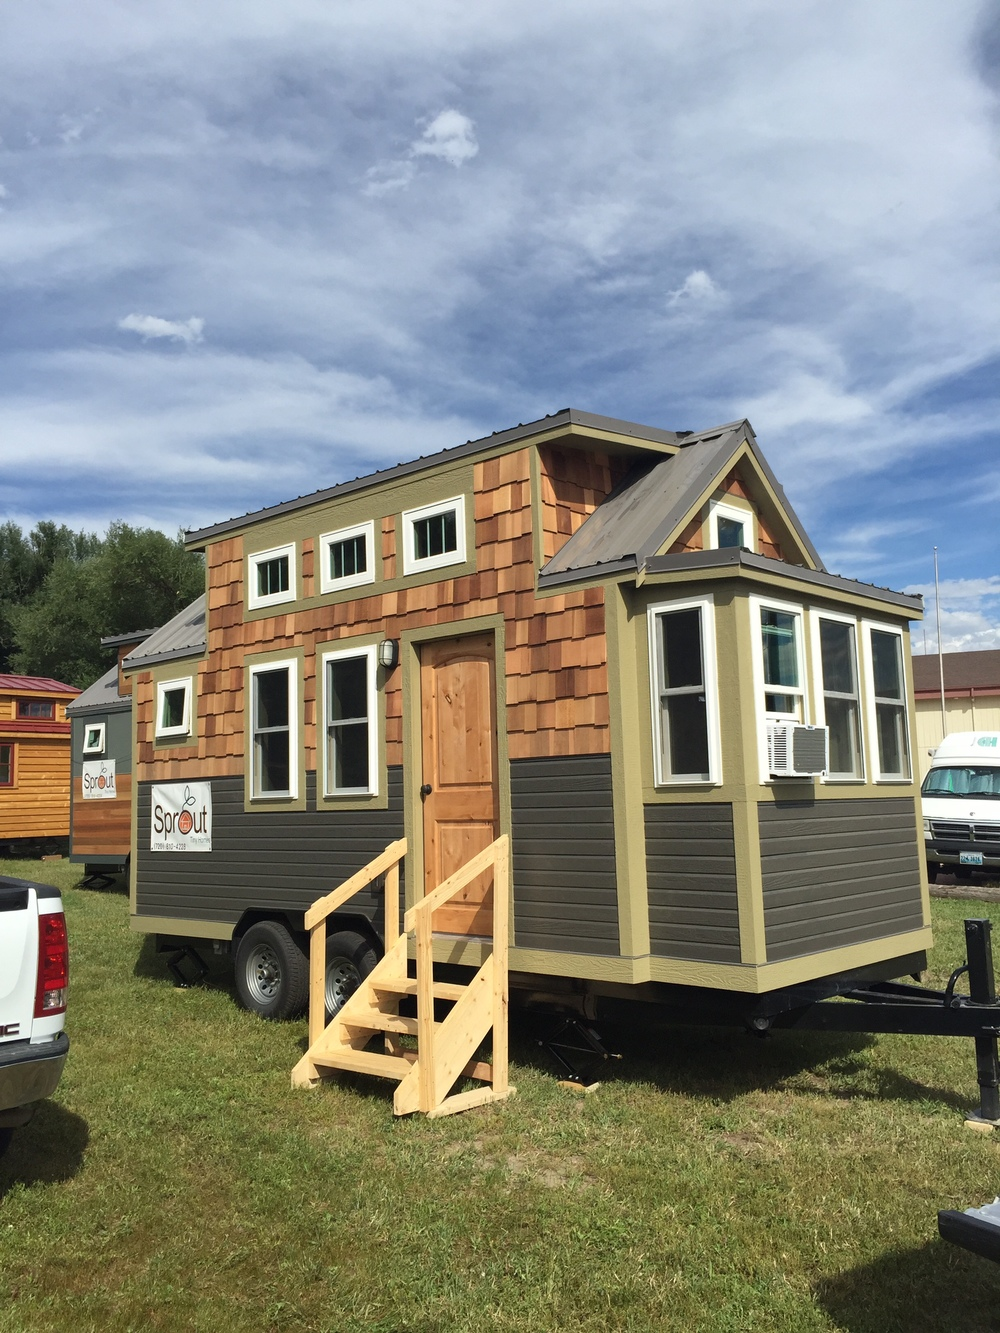 Sprout Tiny Houses